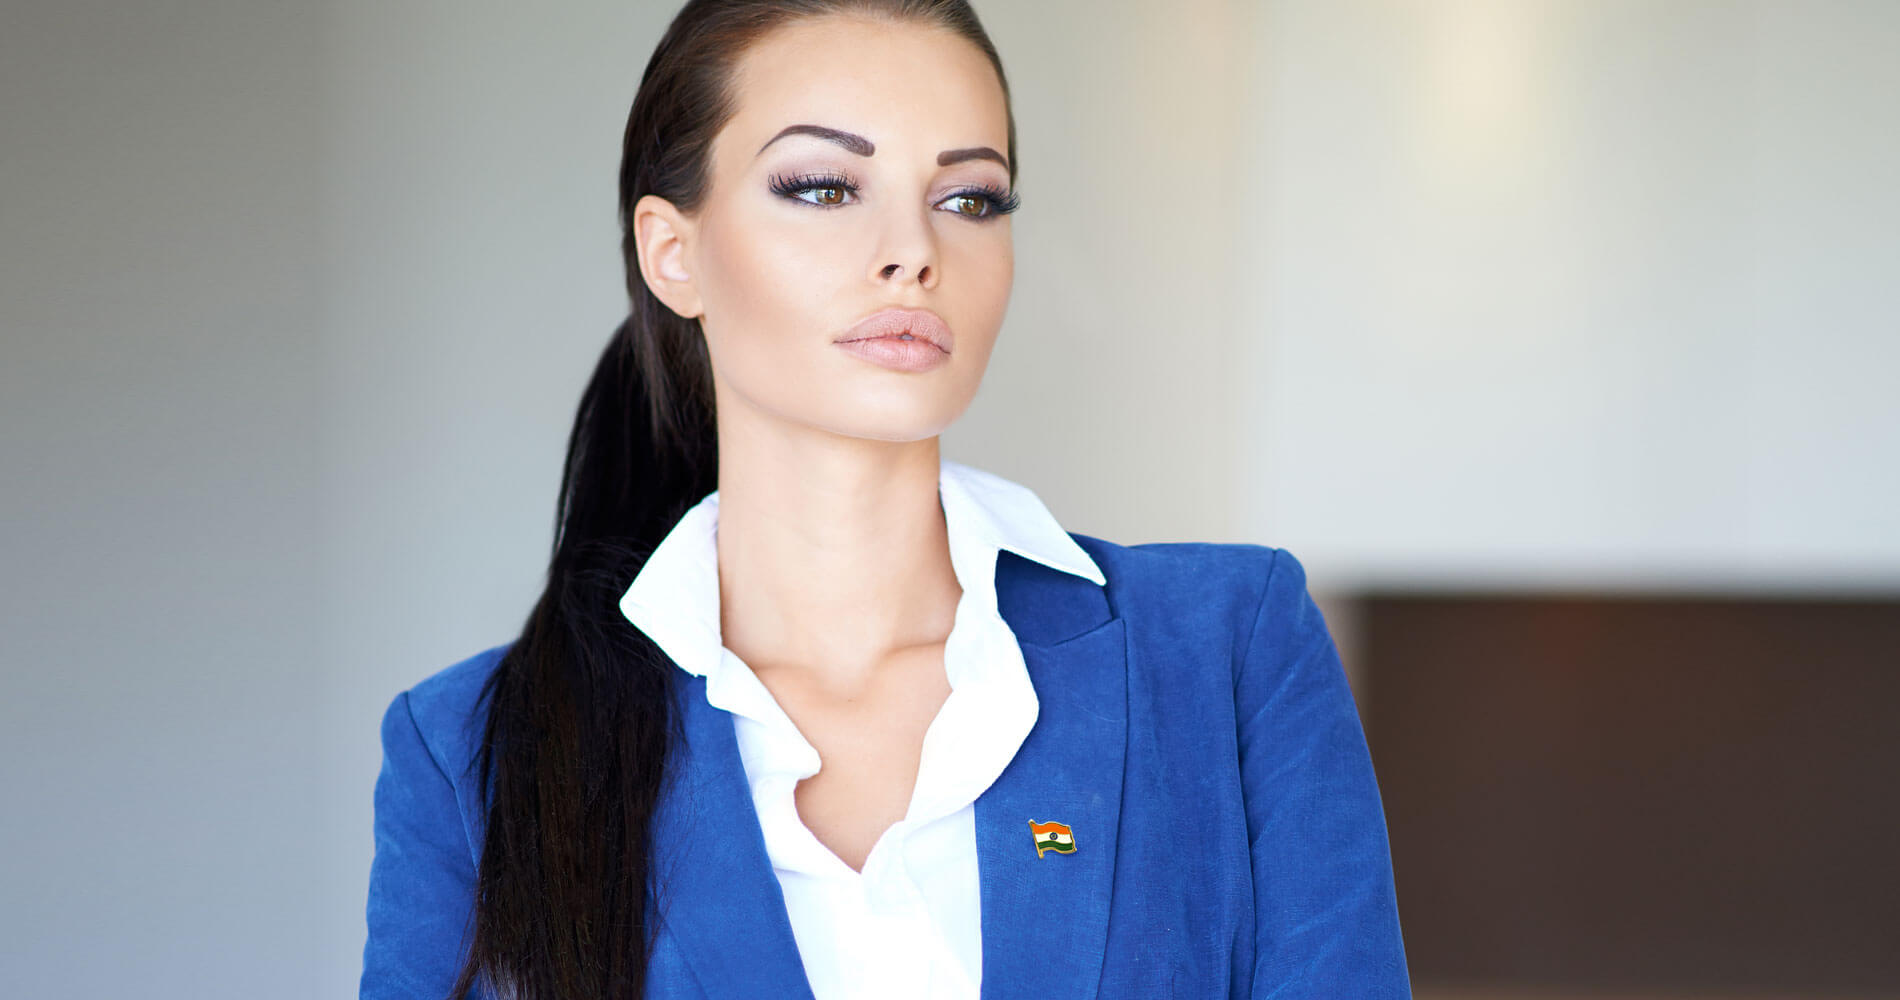 Indian Flag Brass Lapel Pin Worn By Model